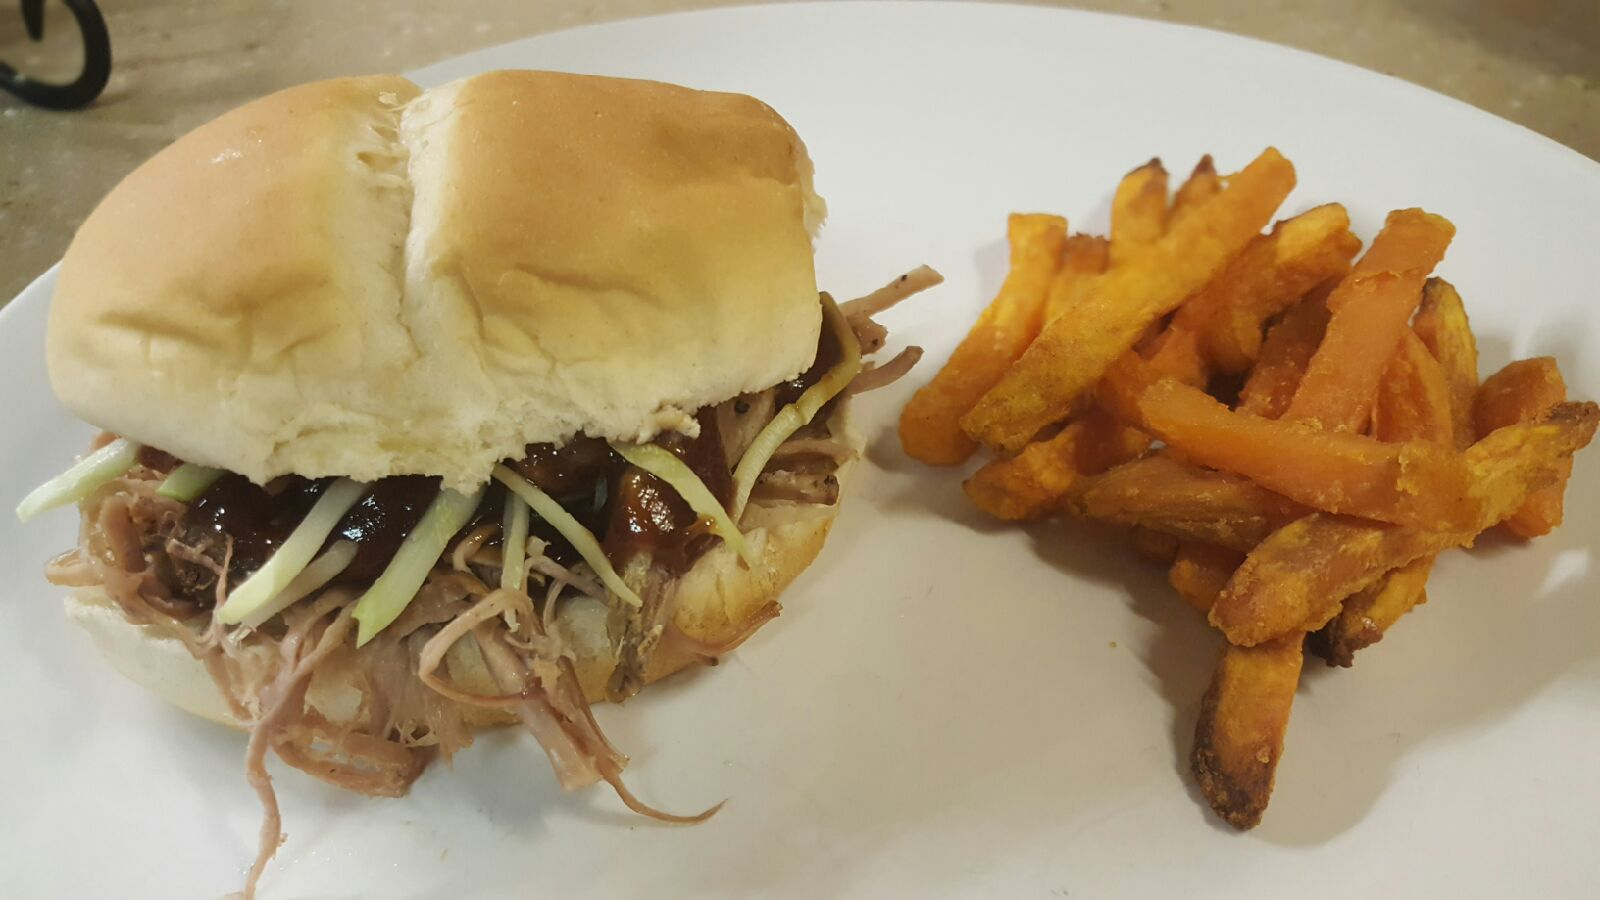 Pulled pork sandwich on a white plate with sweet potato fries.